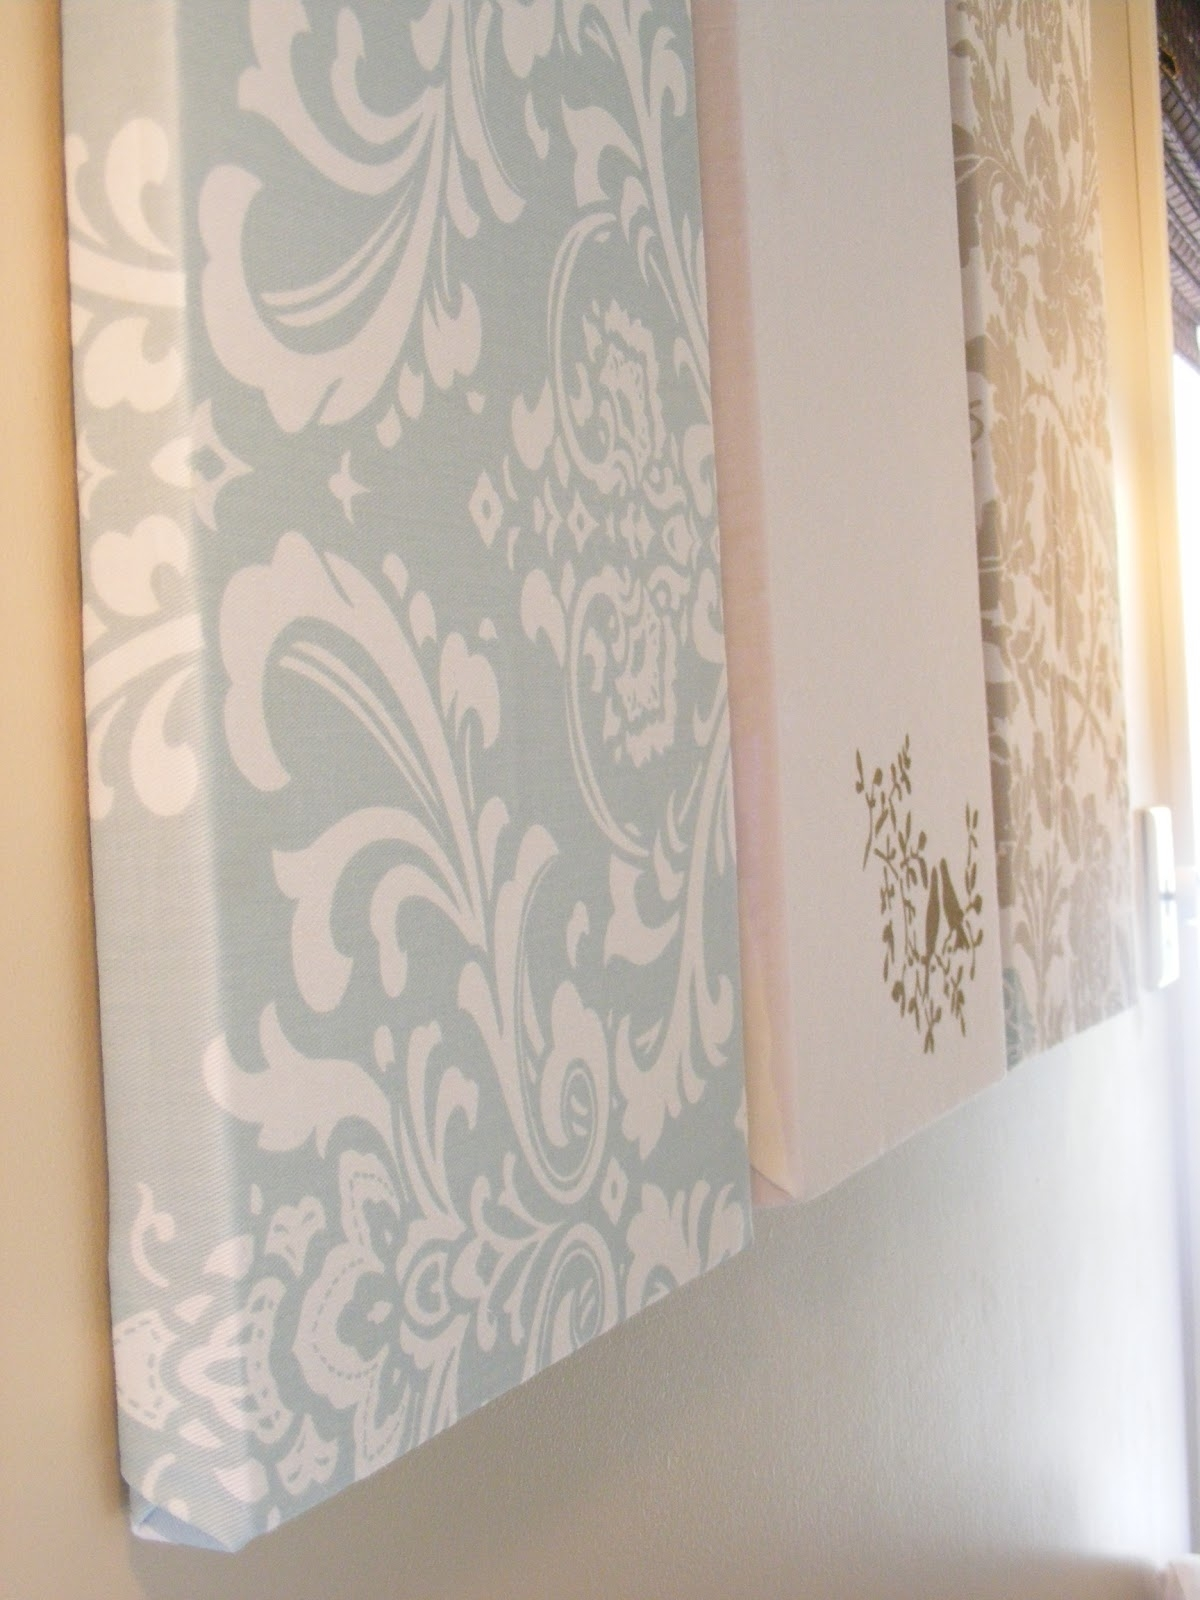 The Complete Guide To Imperfect Homemaking: Simple, Thrifty Diy Art Within Most Current Fabric Square Wall Art (Gallery 12 of 15)